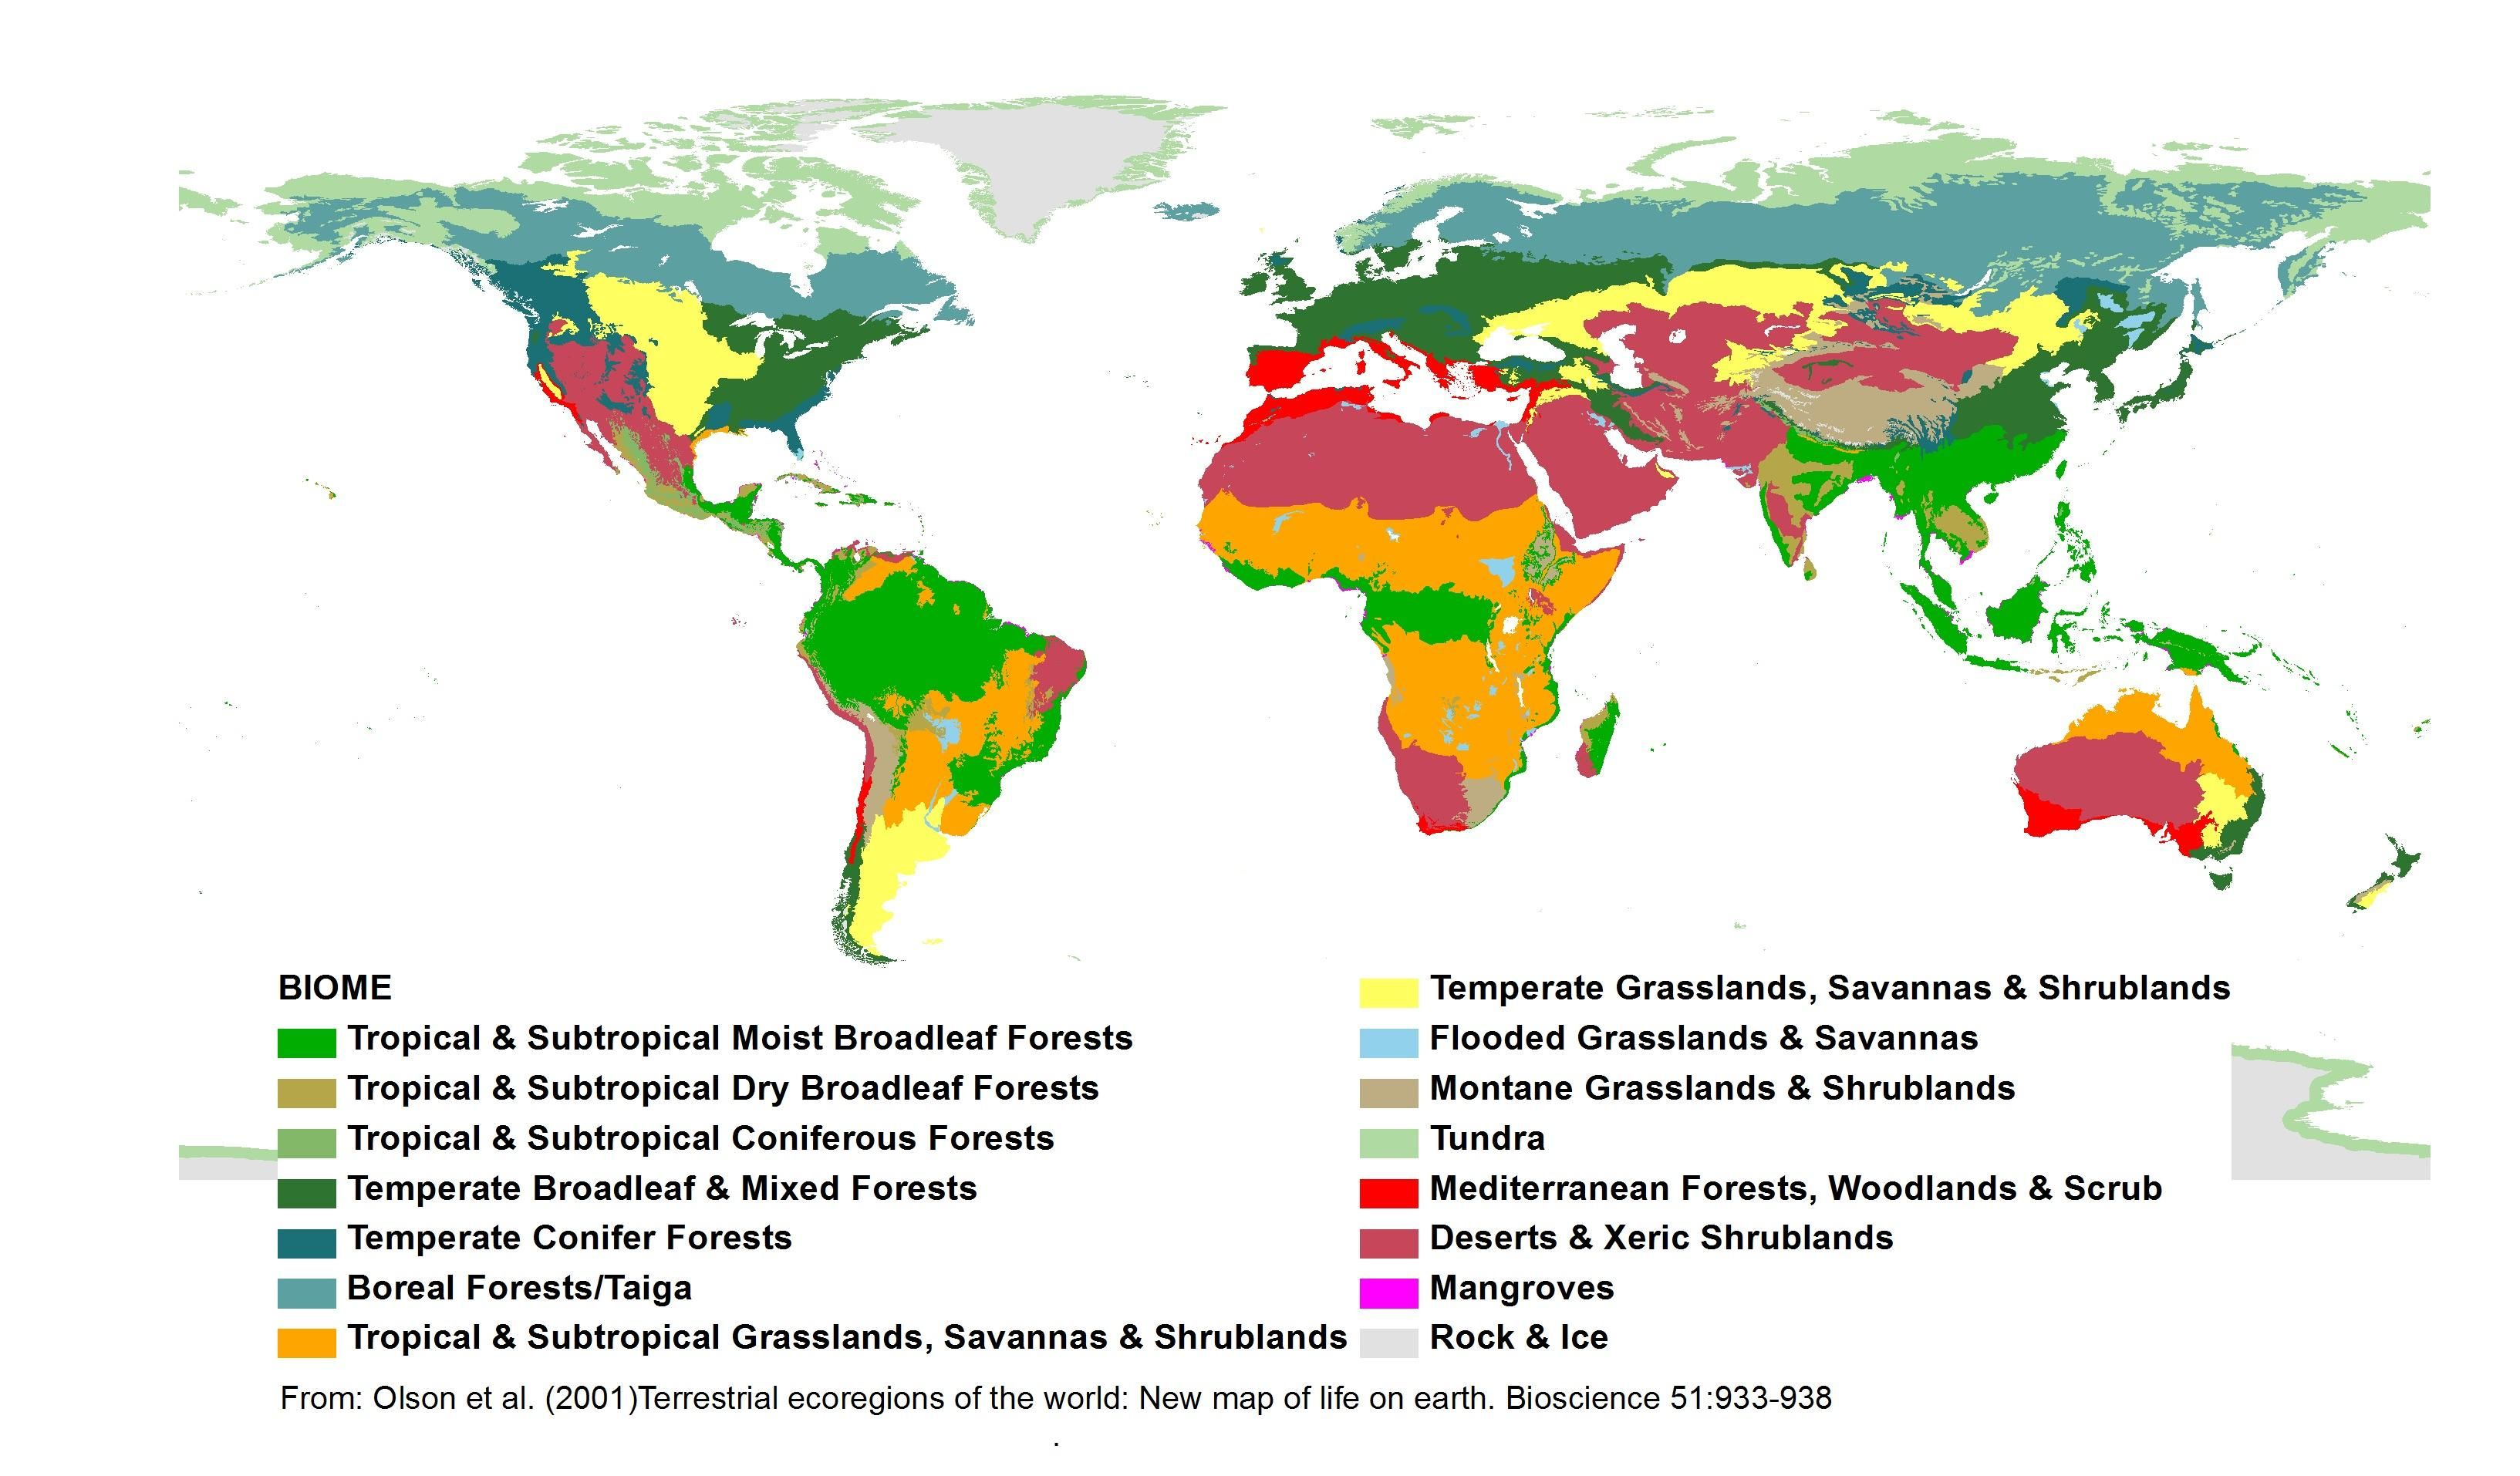 Terrestrial ecoregions of the world new map of life on earth terrestrial ecoregions of the world new map of life on earthpublished gumiabroncs Image collections